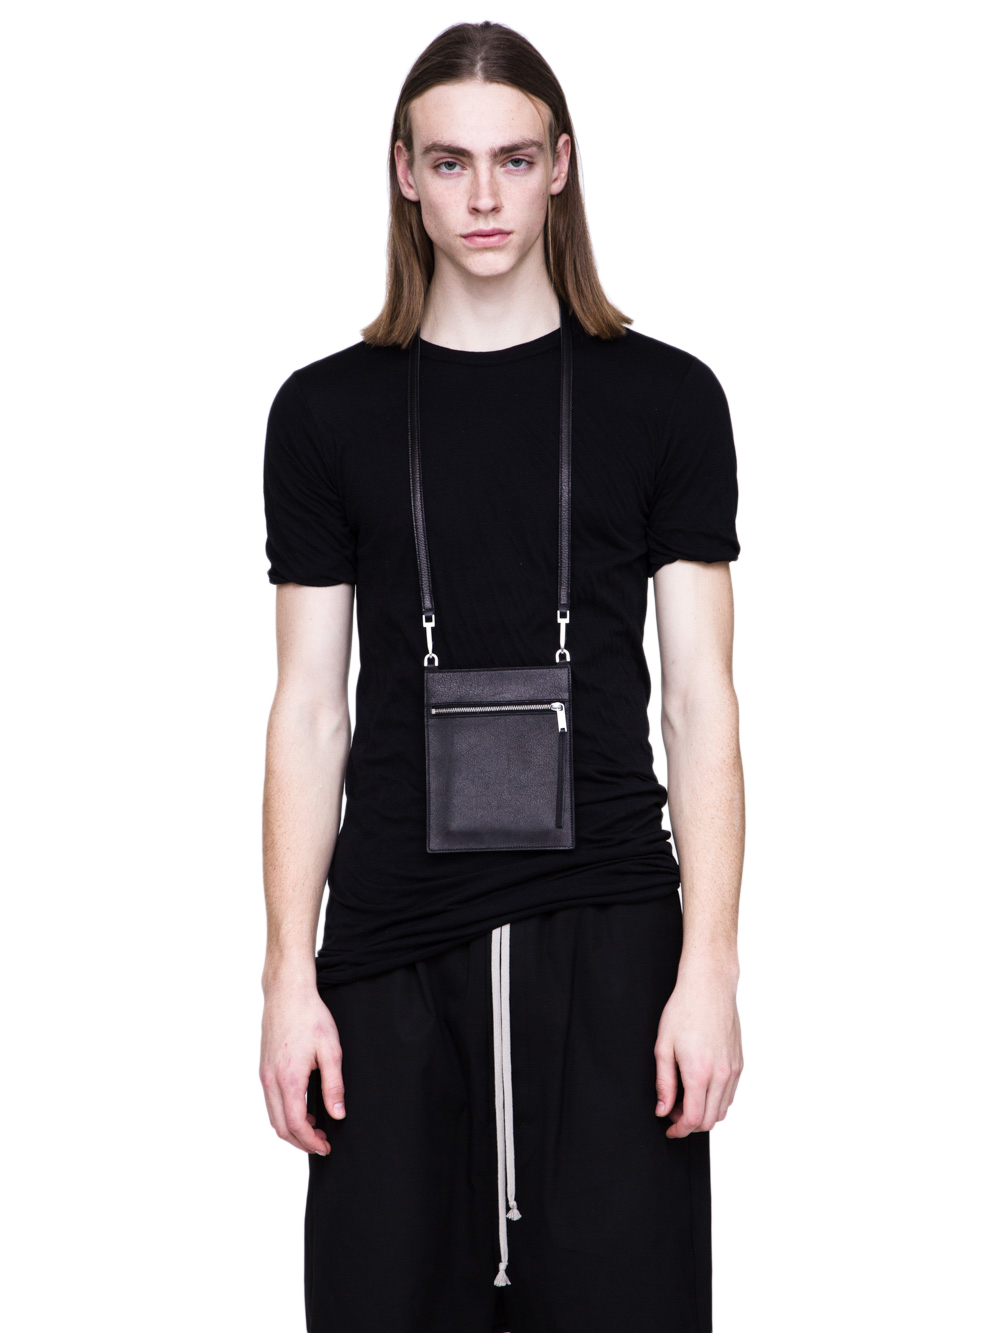 RICK OWENS SS19 BABEL SECURITY POCKET IN BLACK LEATHER